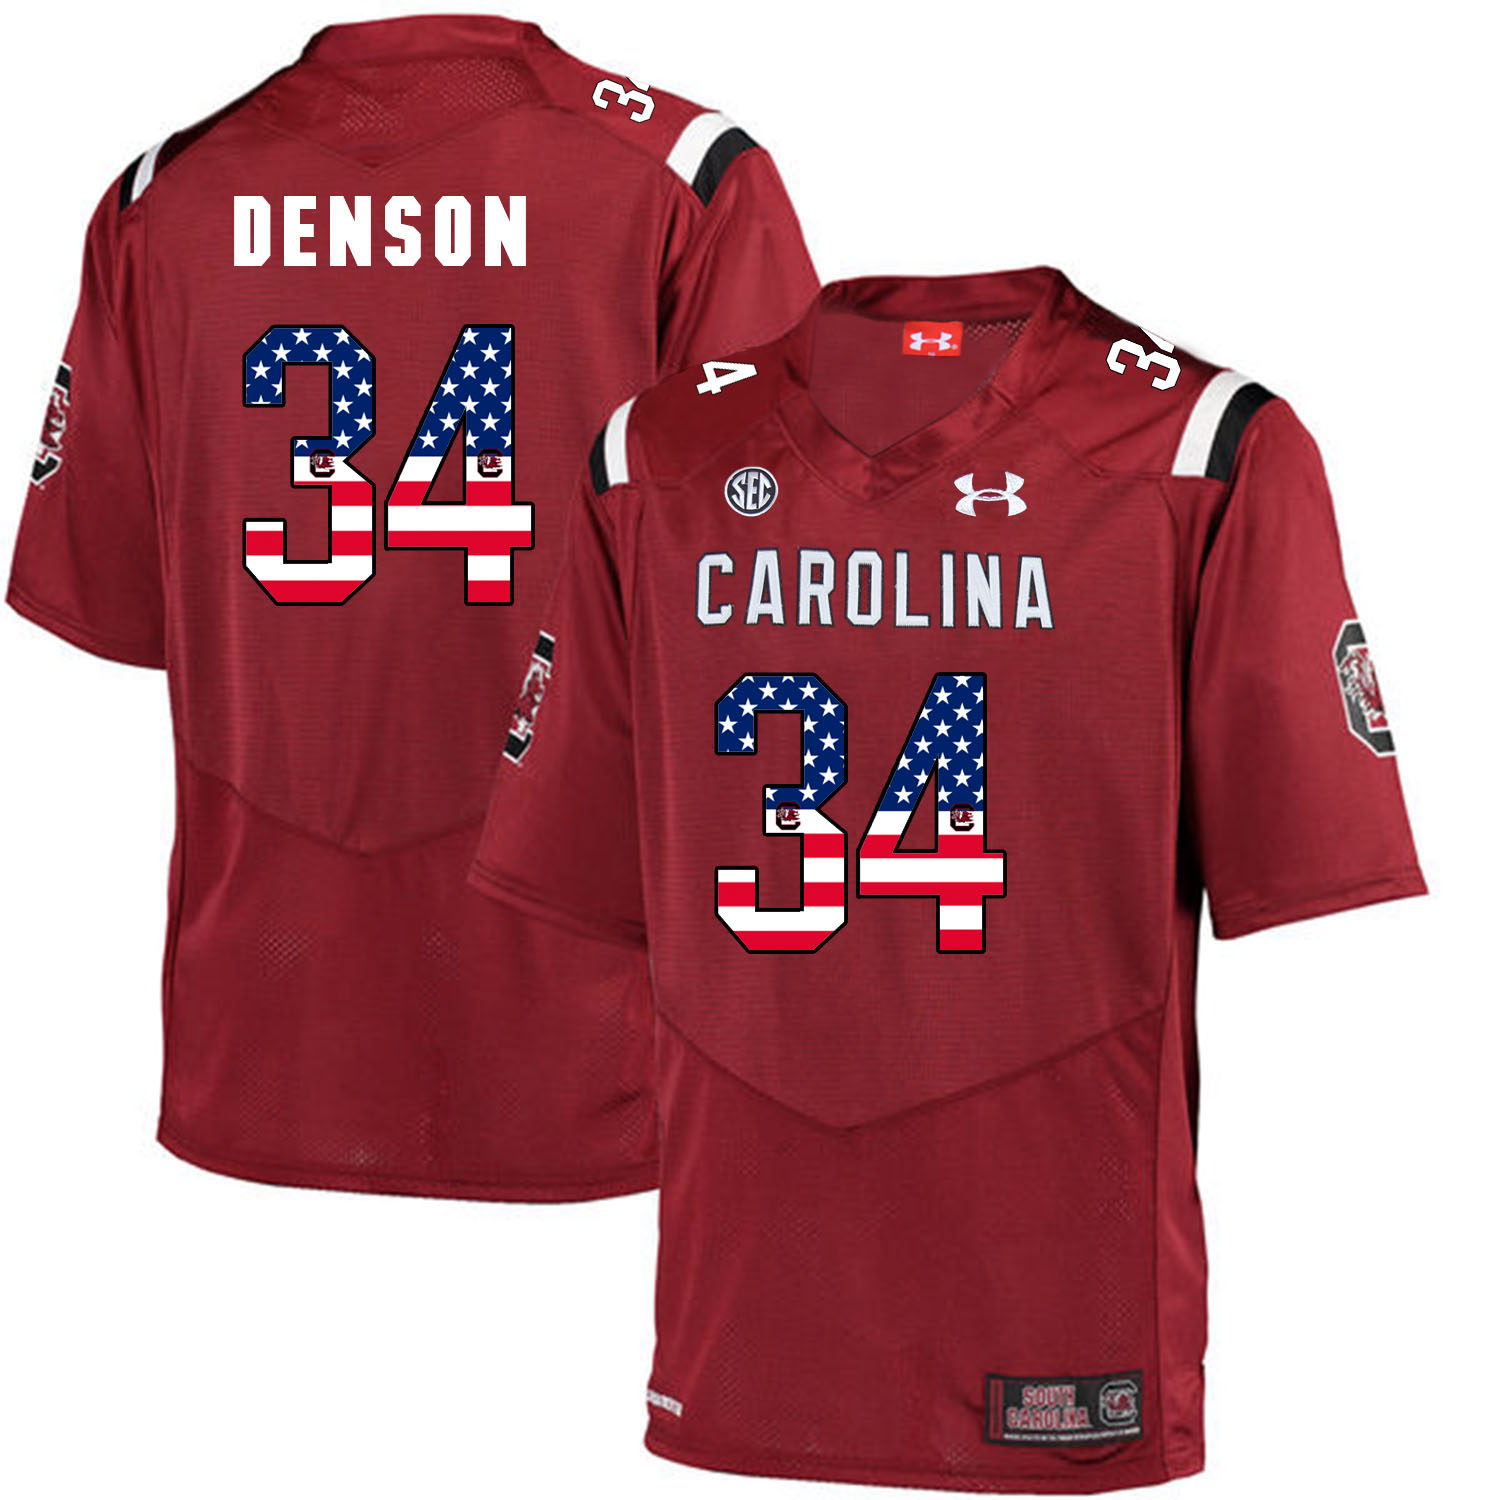 South Carolina Gamecocks 34 Mon Denson Red USA Flag College Football Jersey